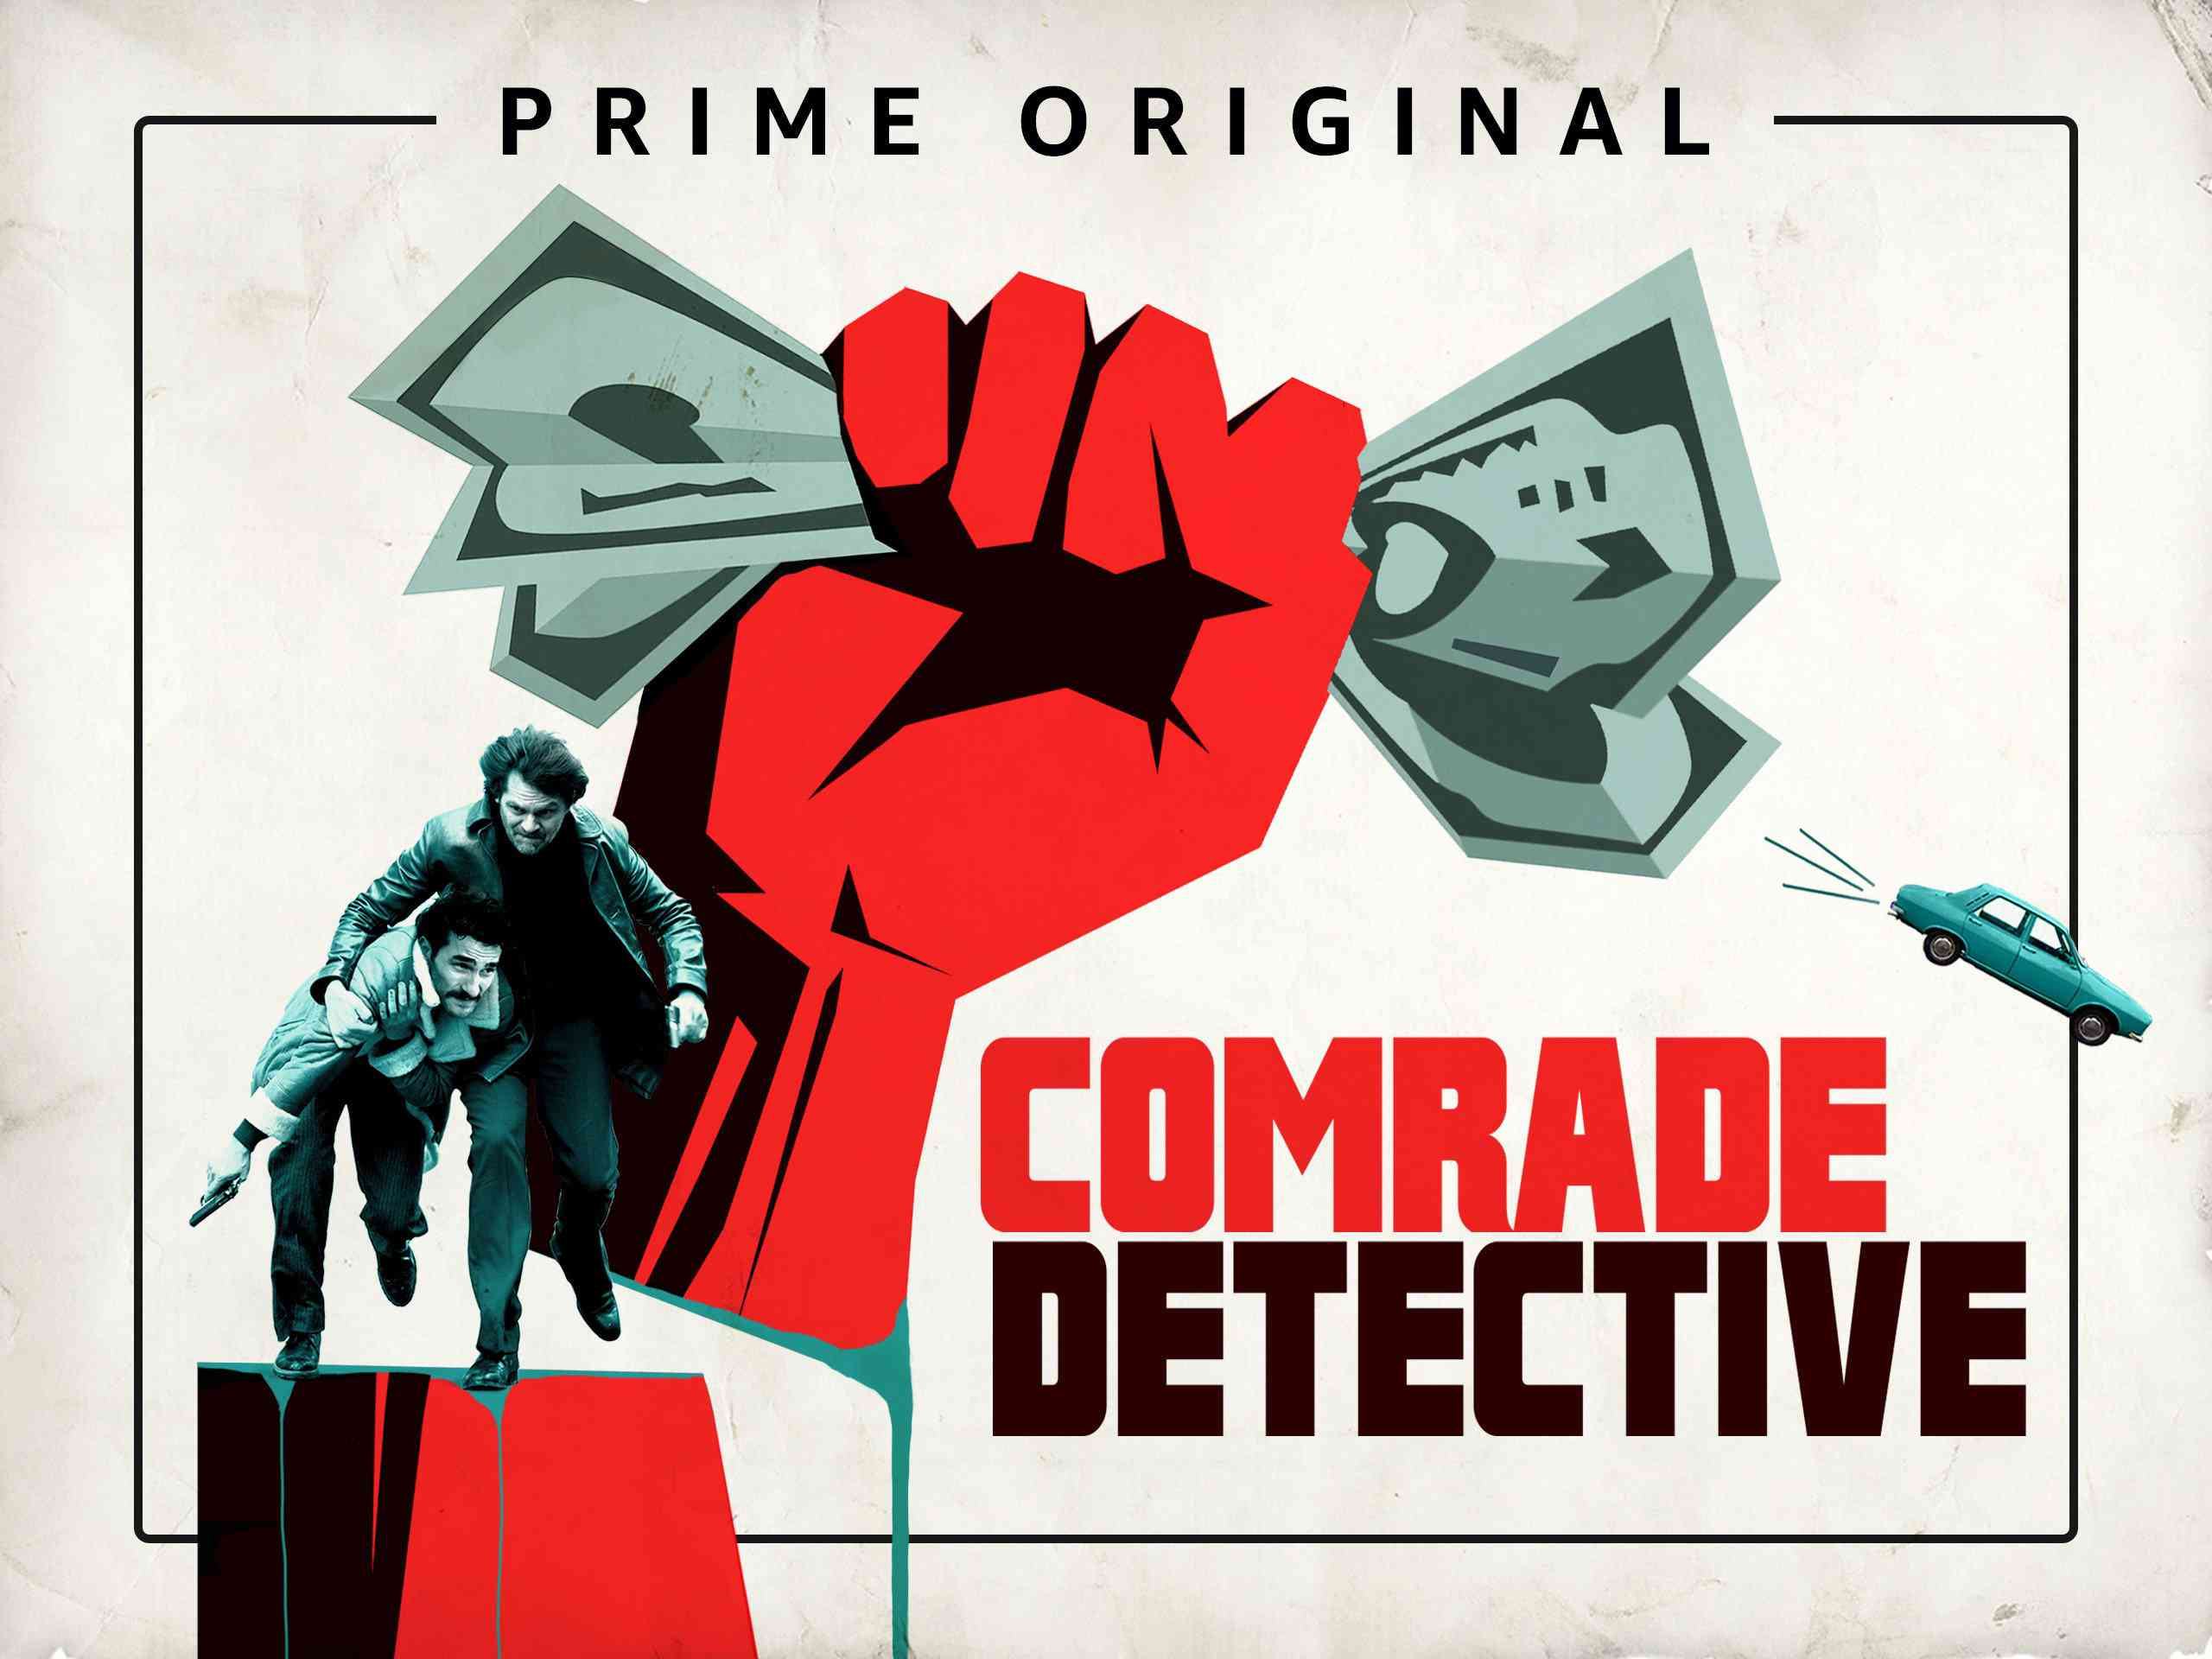 Promotional image for Comrade Detective